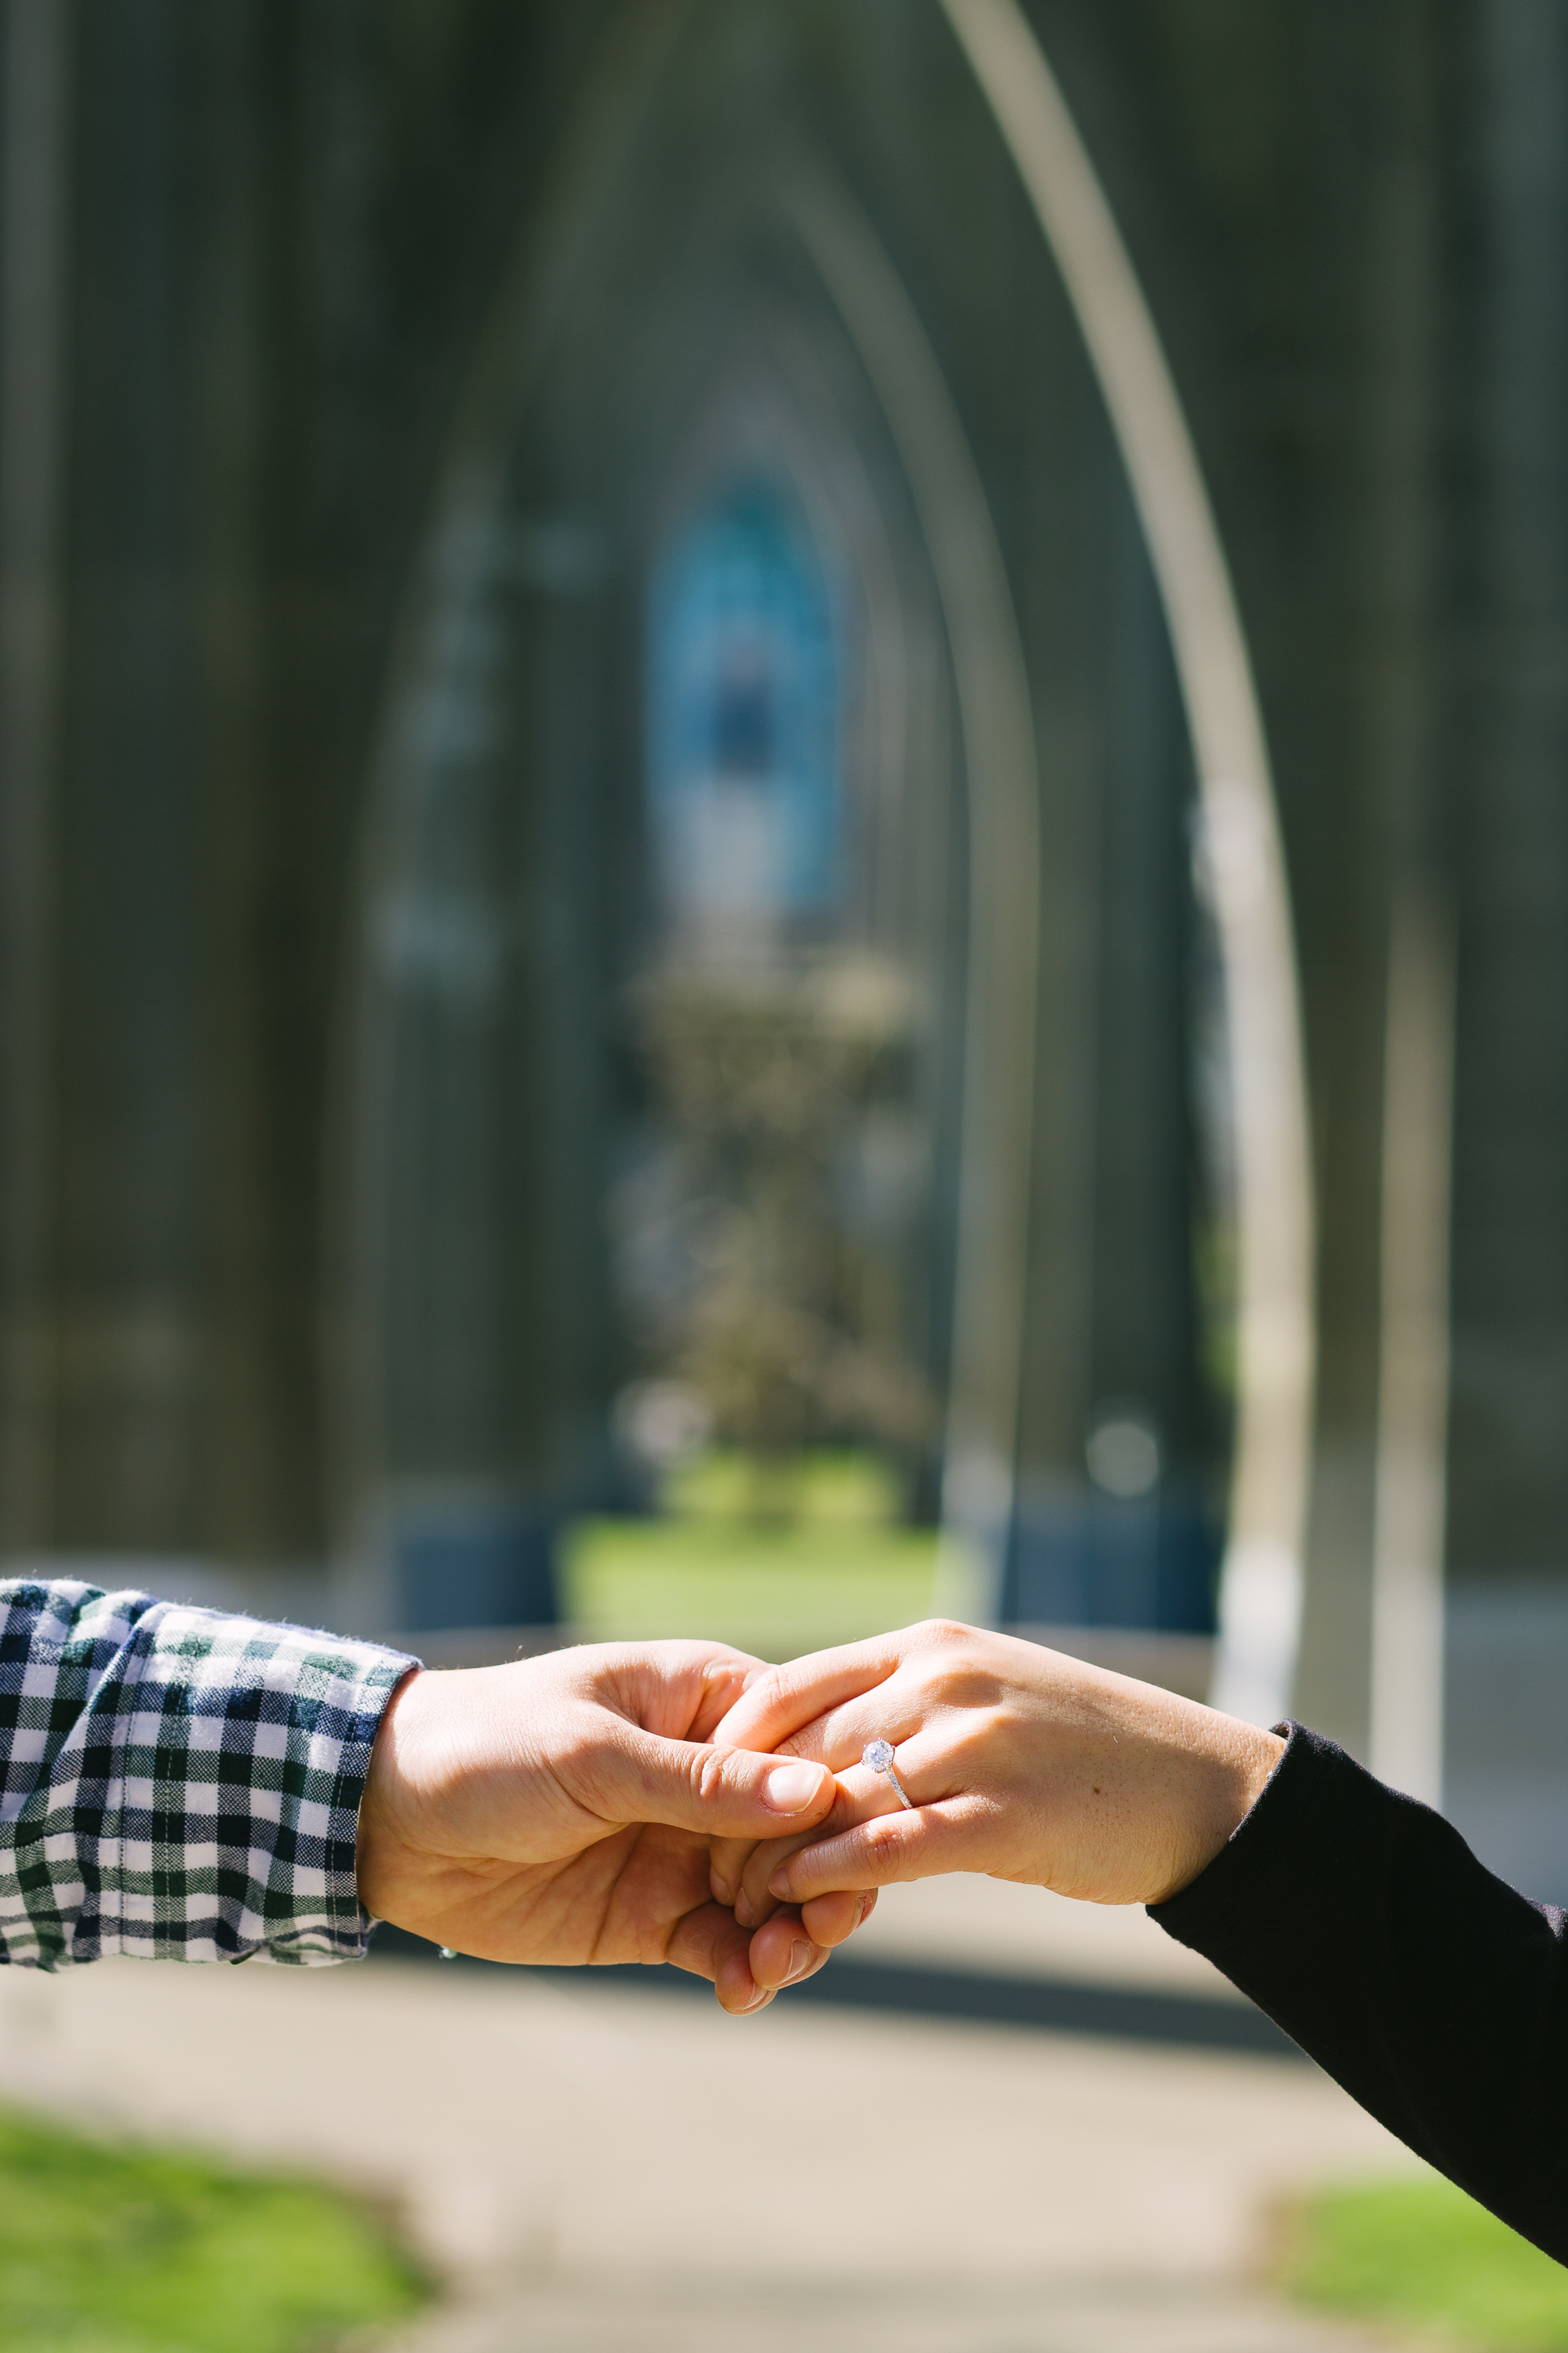 cathedral-park-engagement-photography-17.jpg